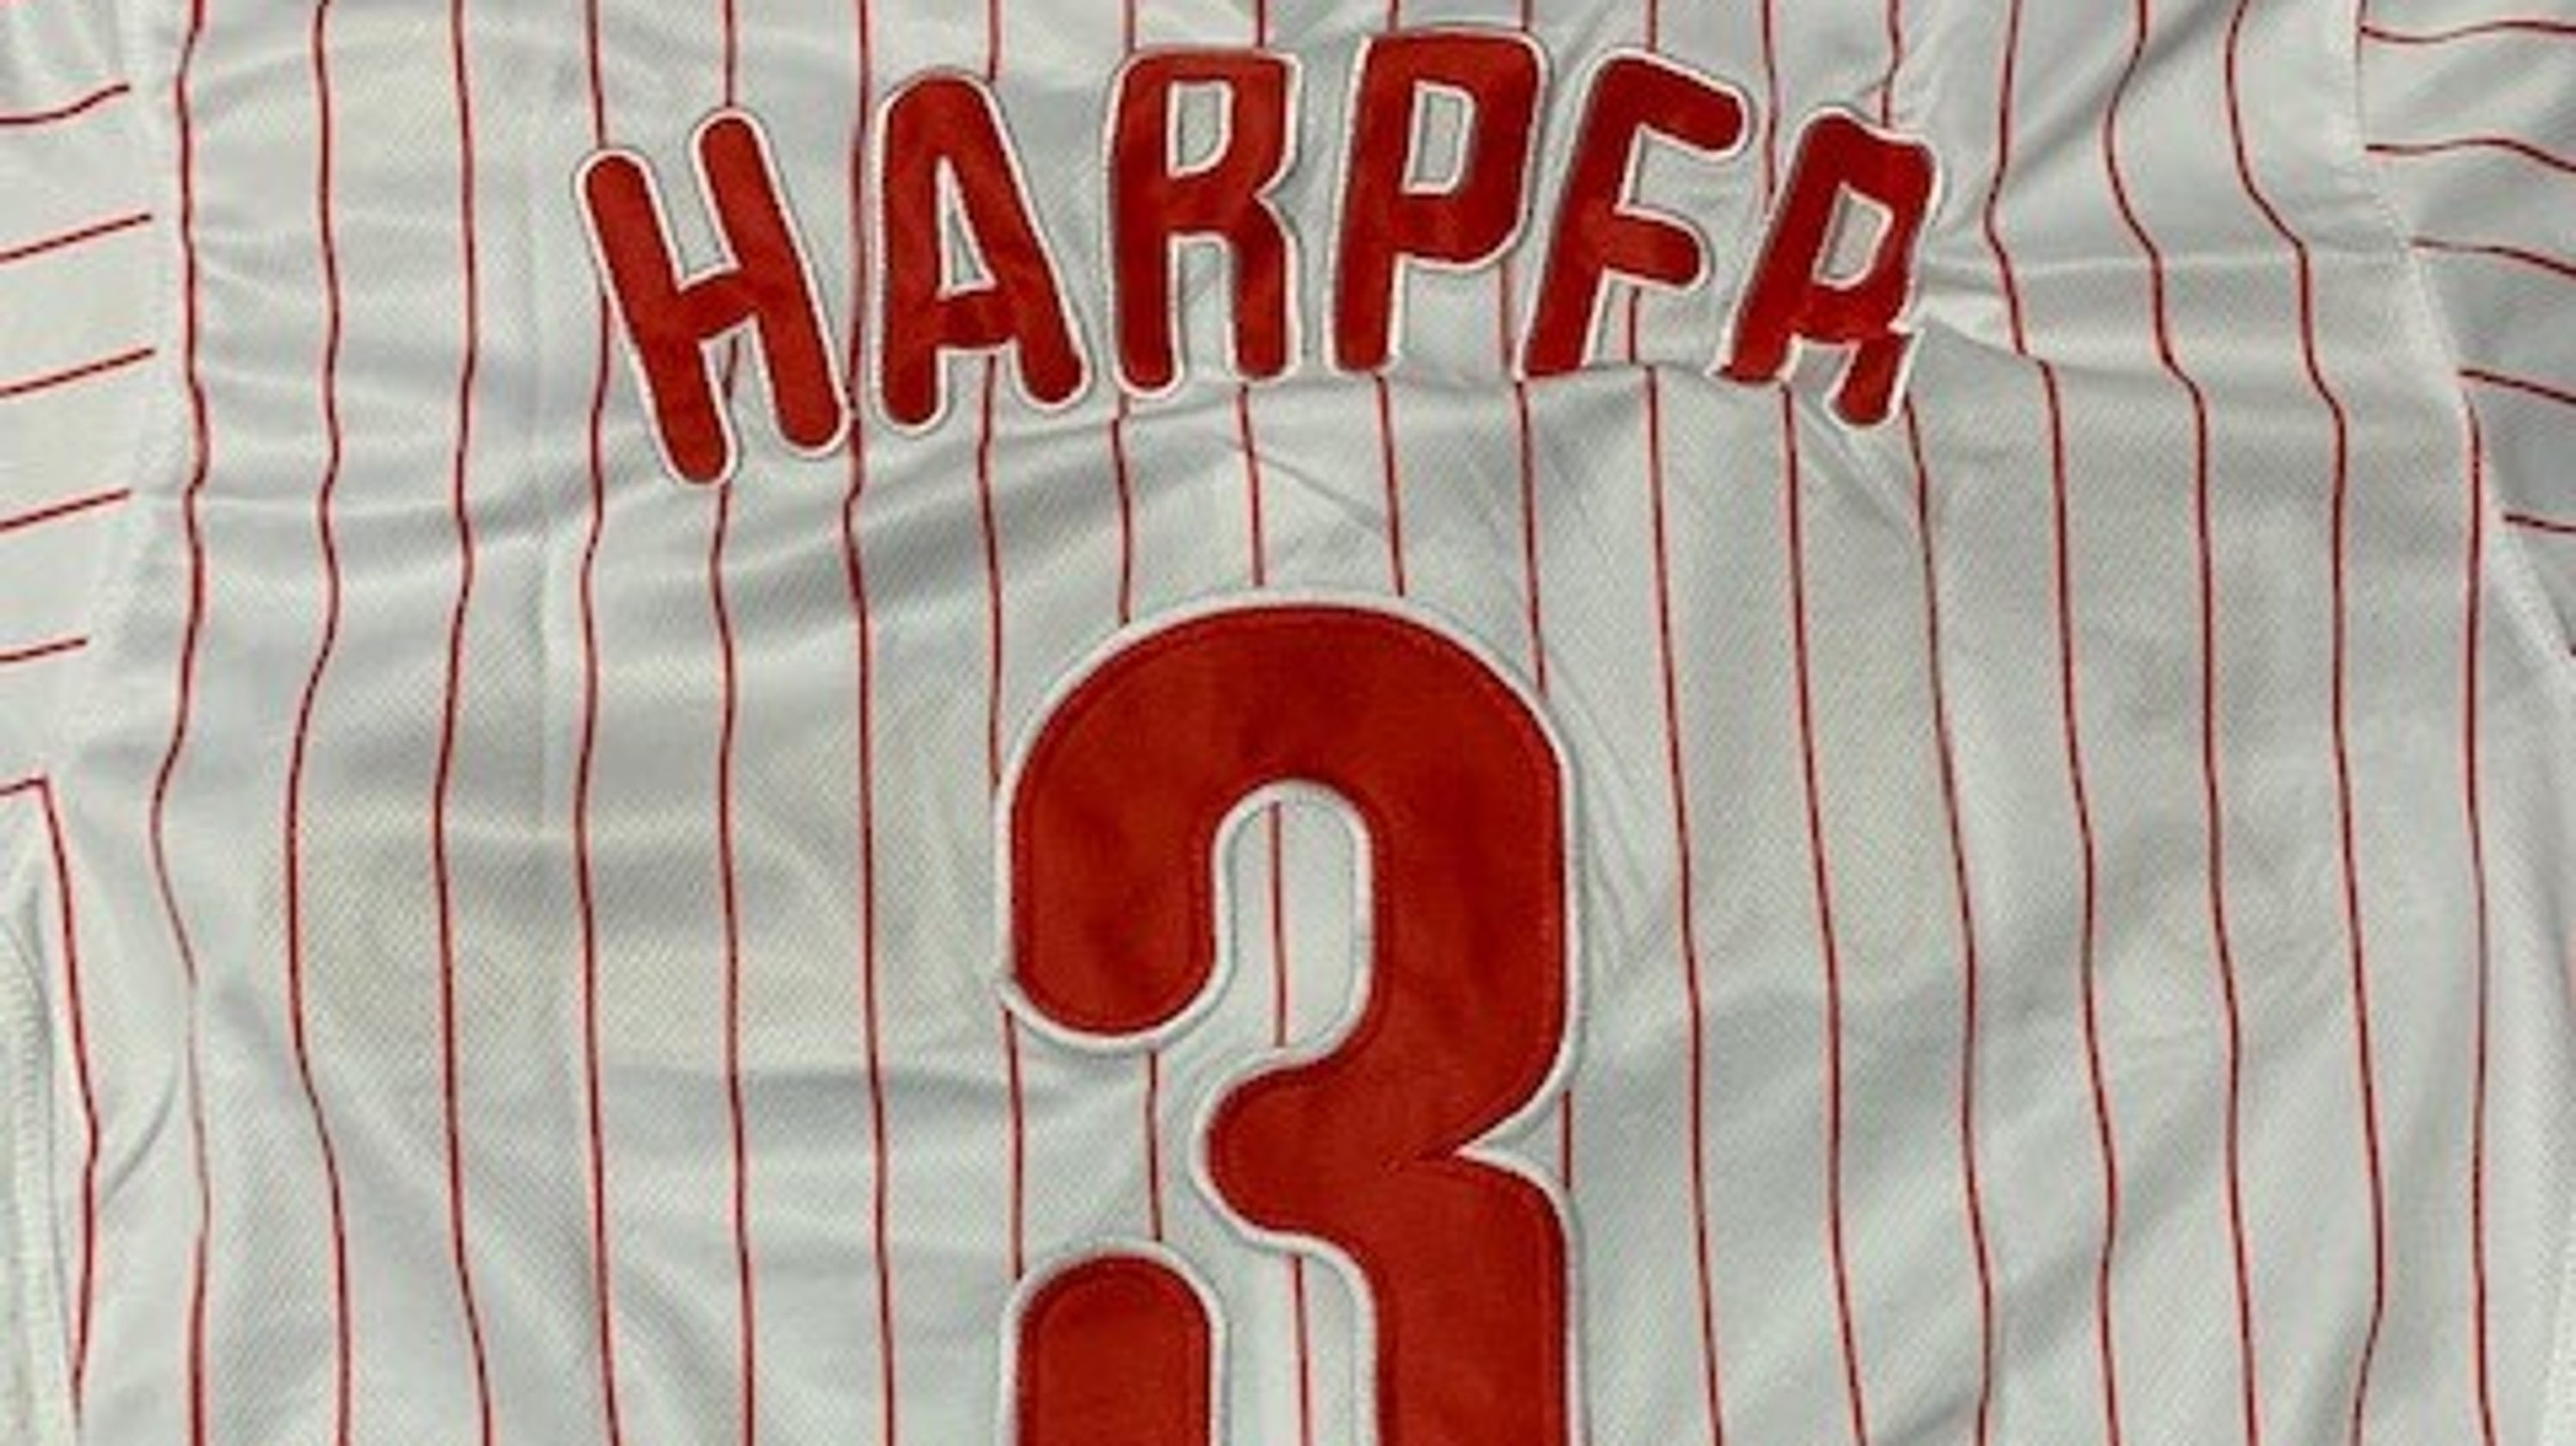 quality design b5d11 a26eb More than 300 fake Bryce Harper jerseys seized at Port of ...